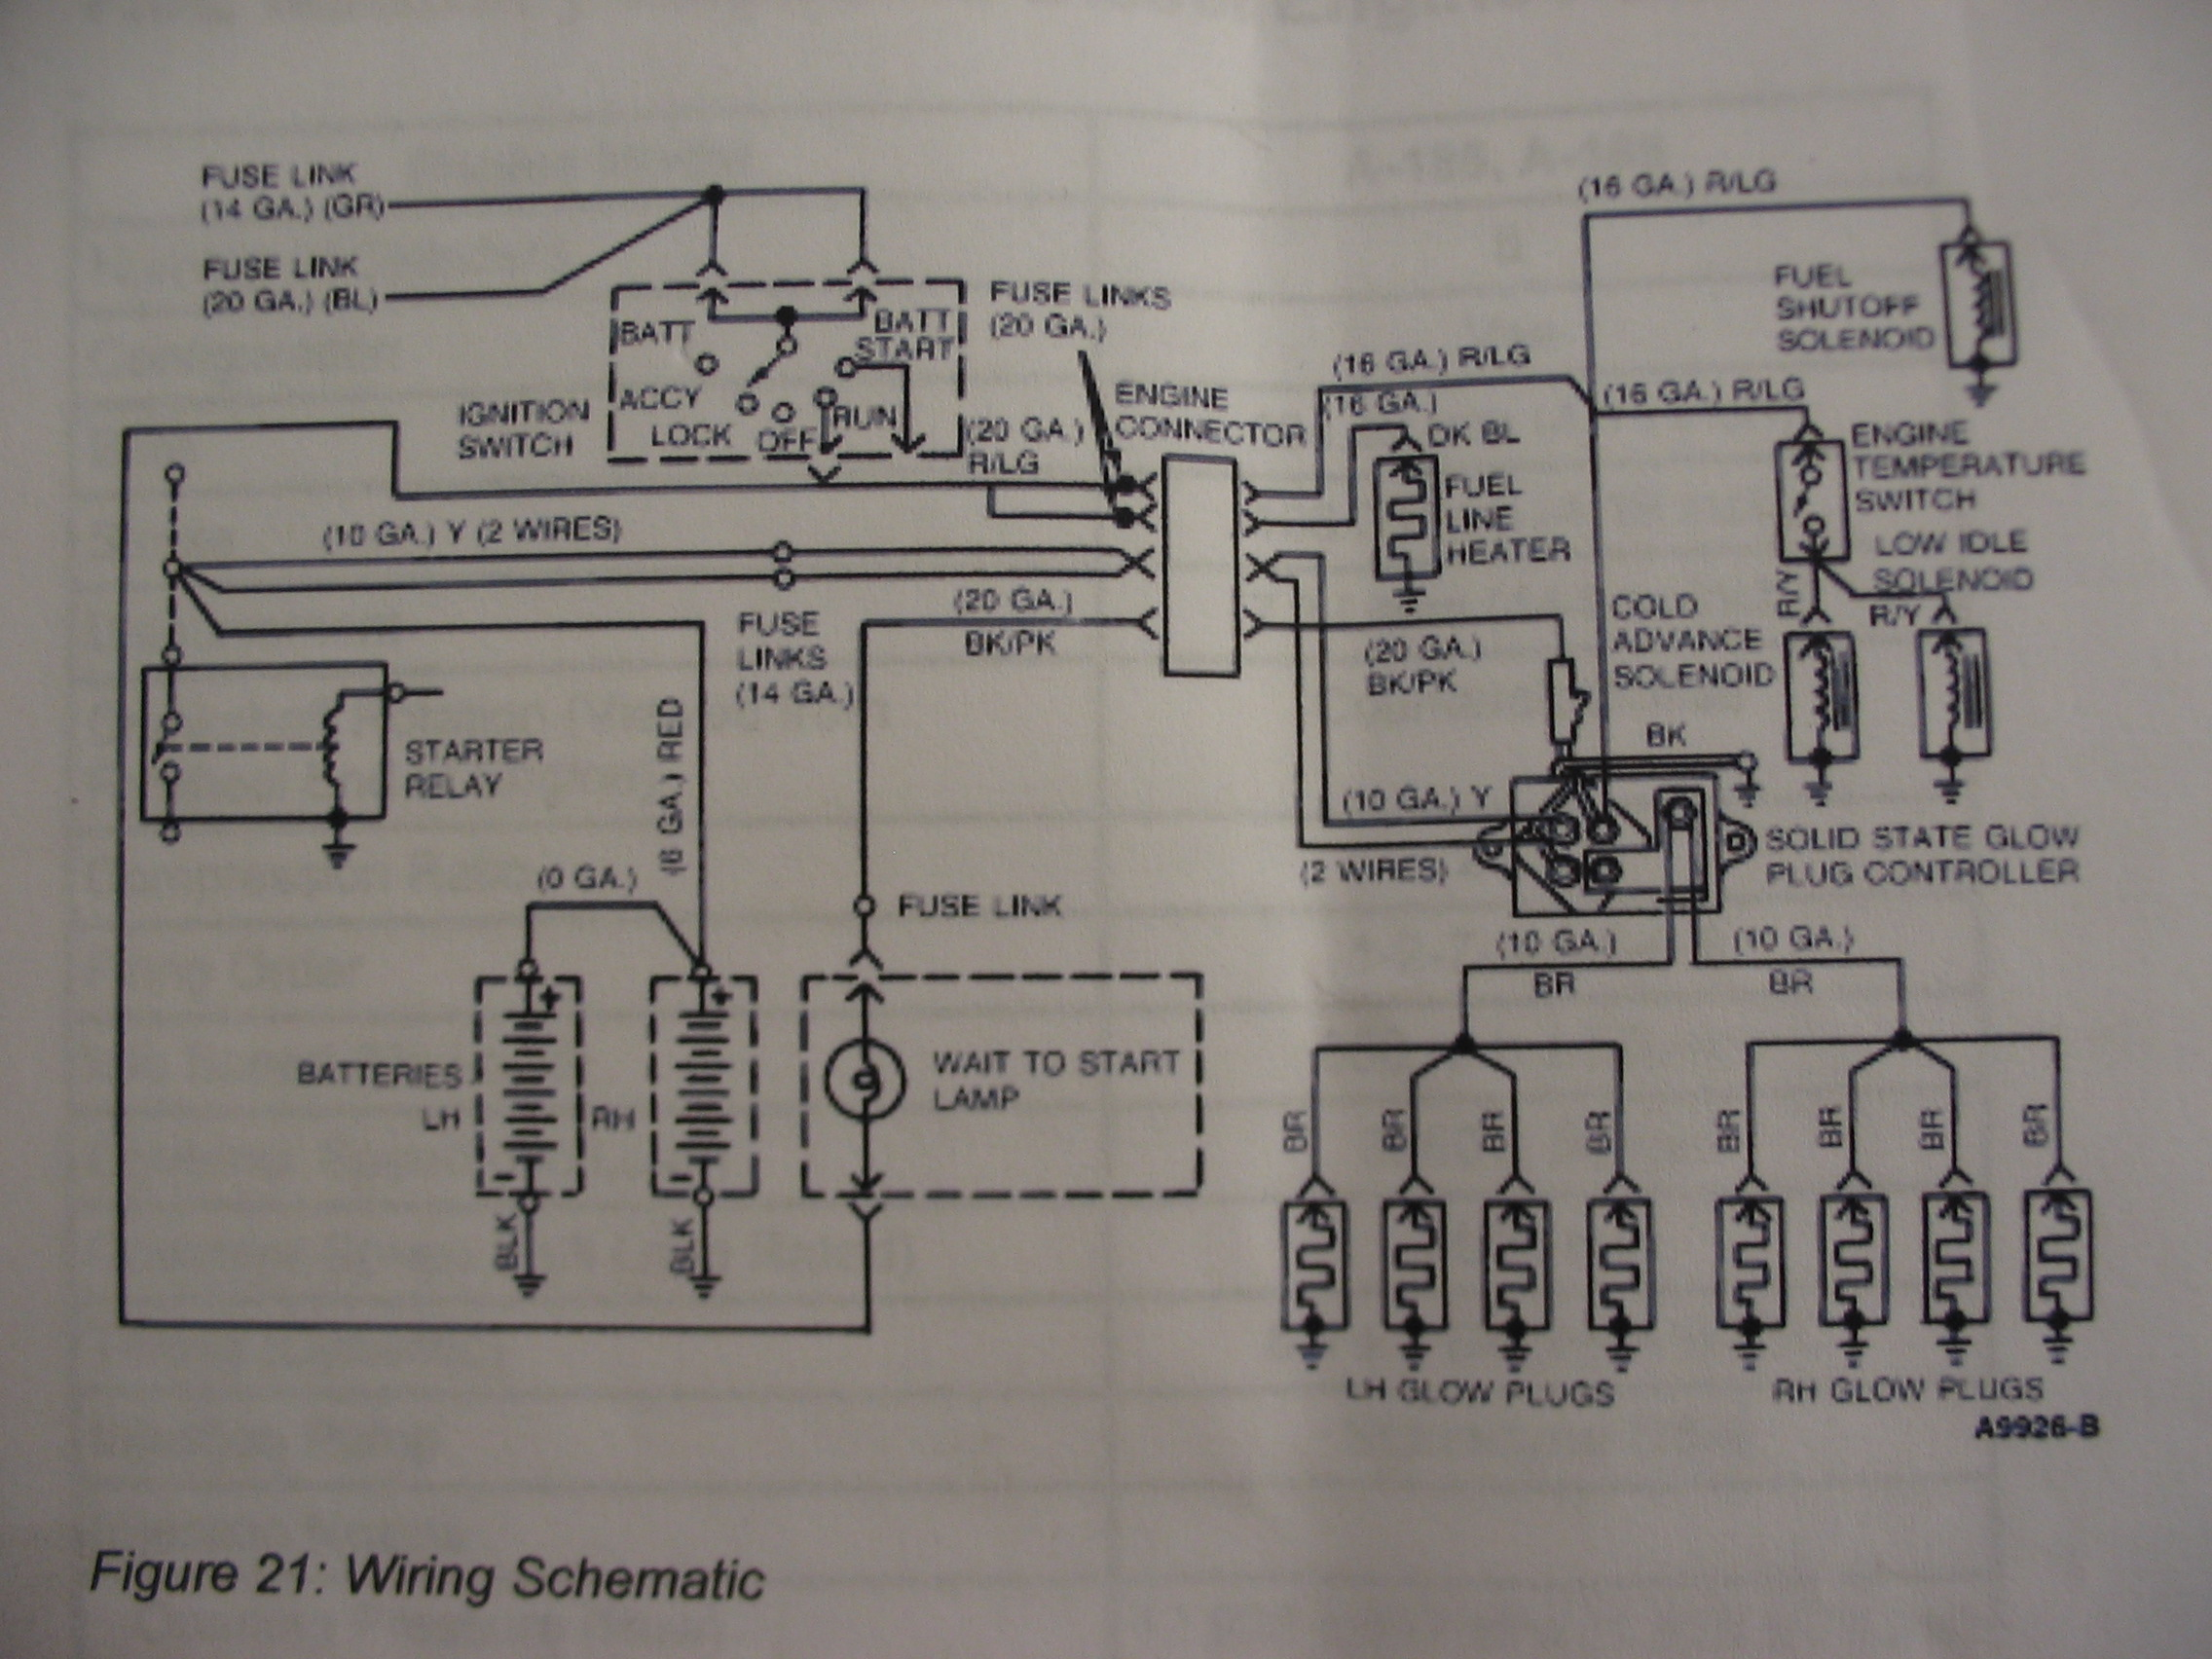 Ford Diagrams Starting Circuit Diagram For The 1955 Mercury All Models 91 Glow Plug Wiring